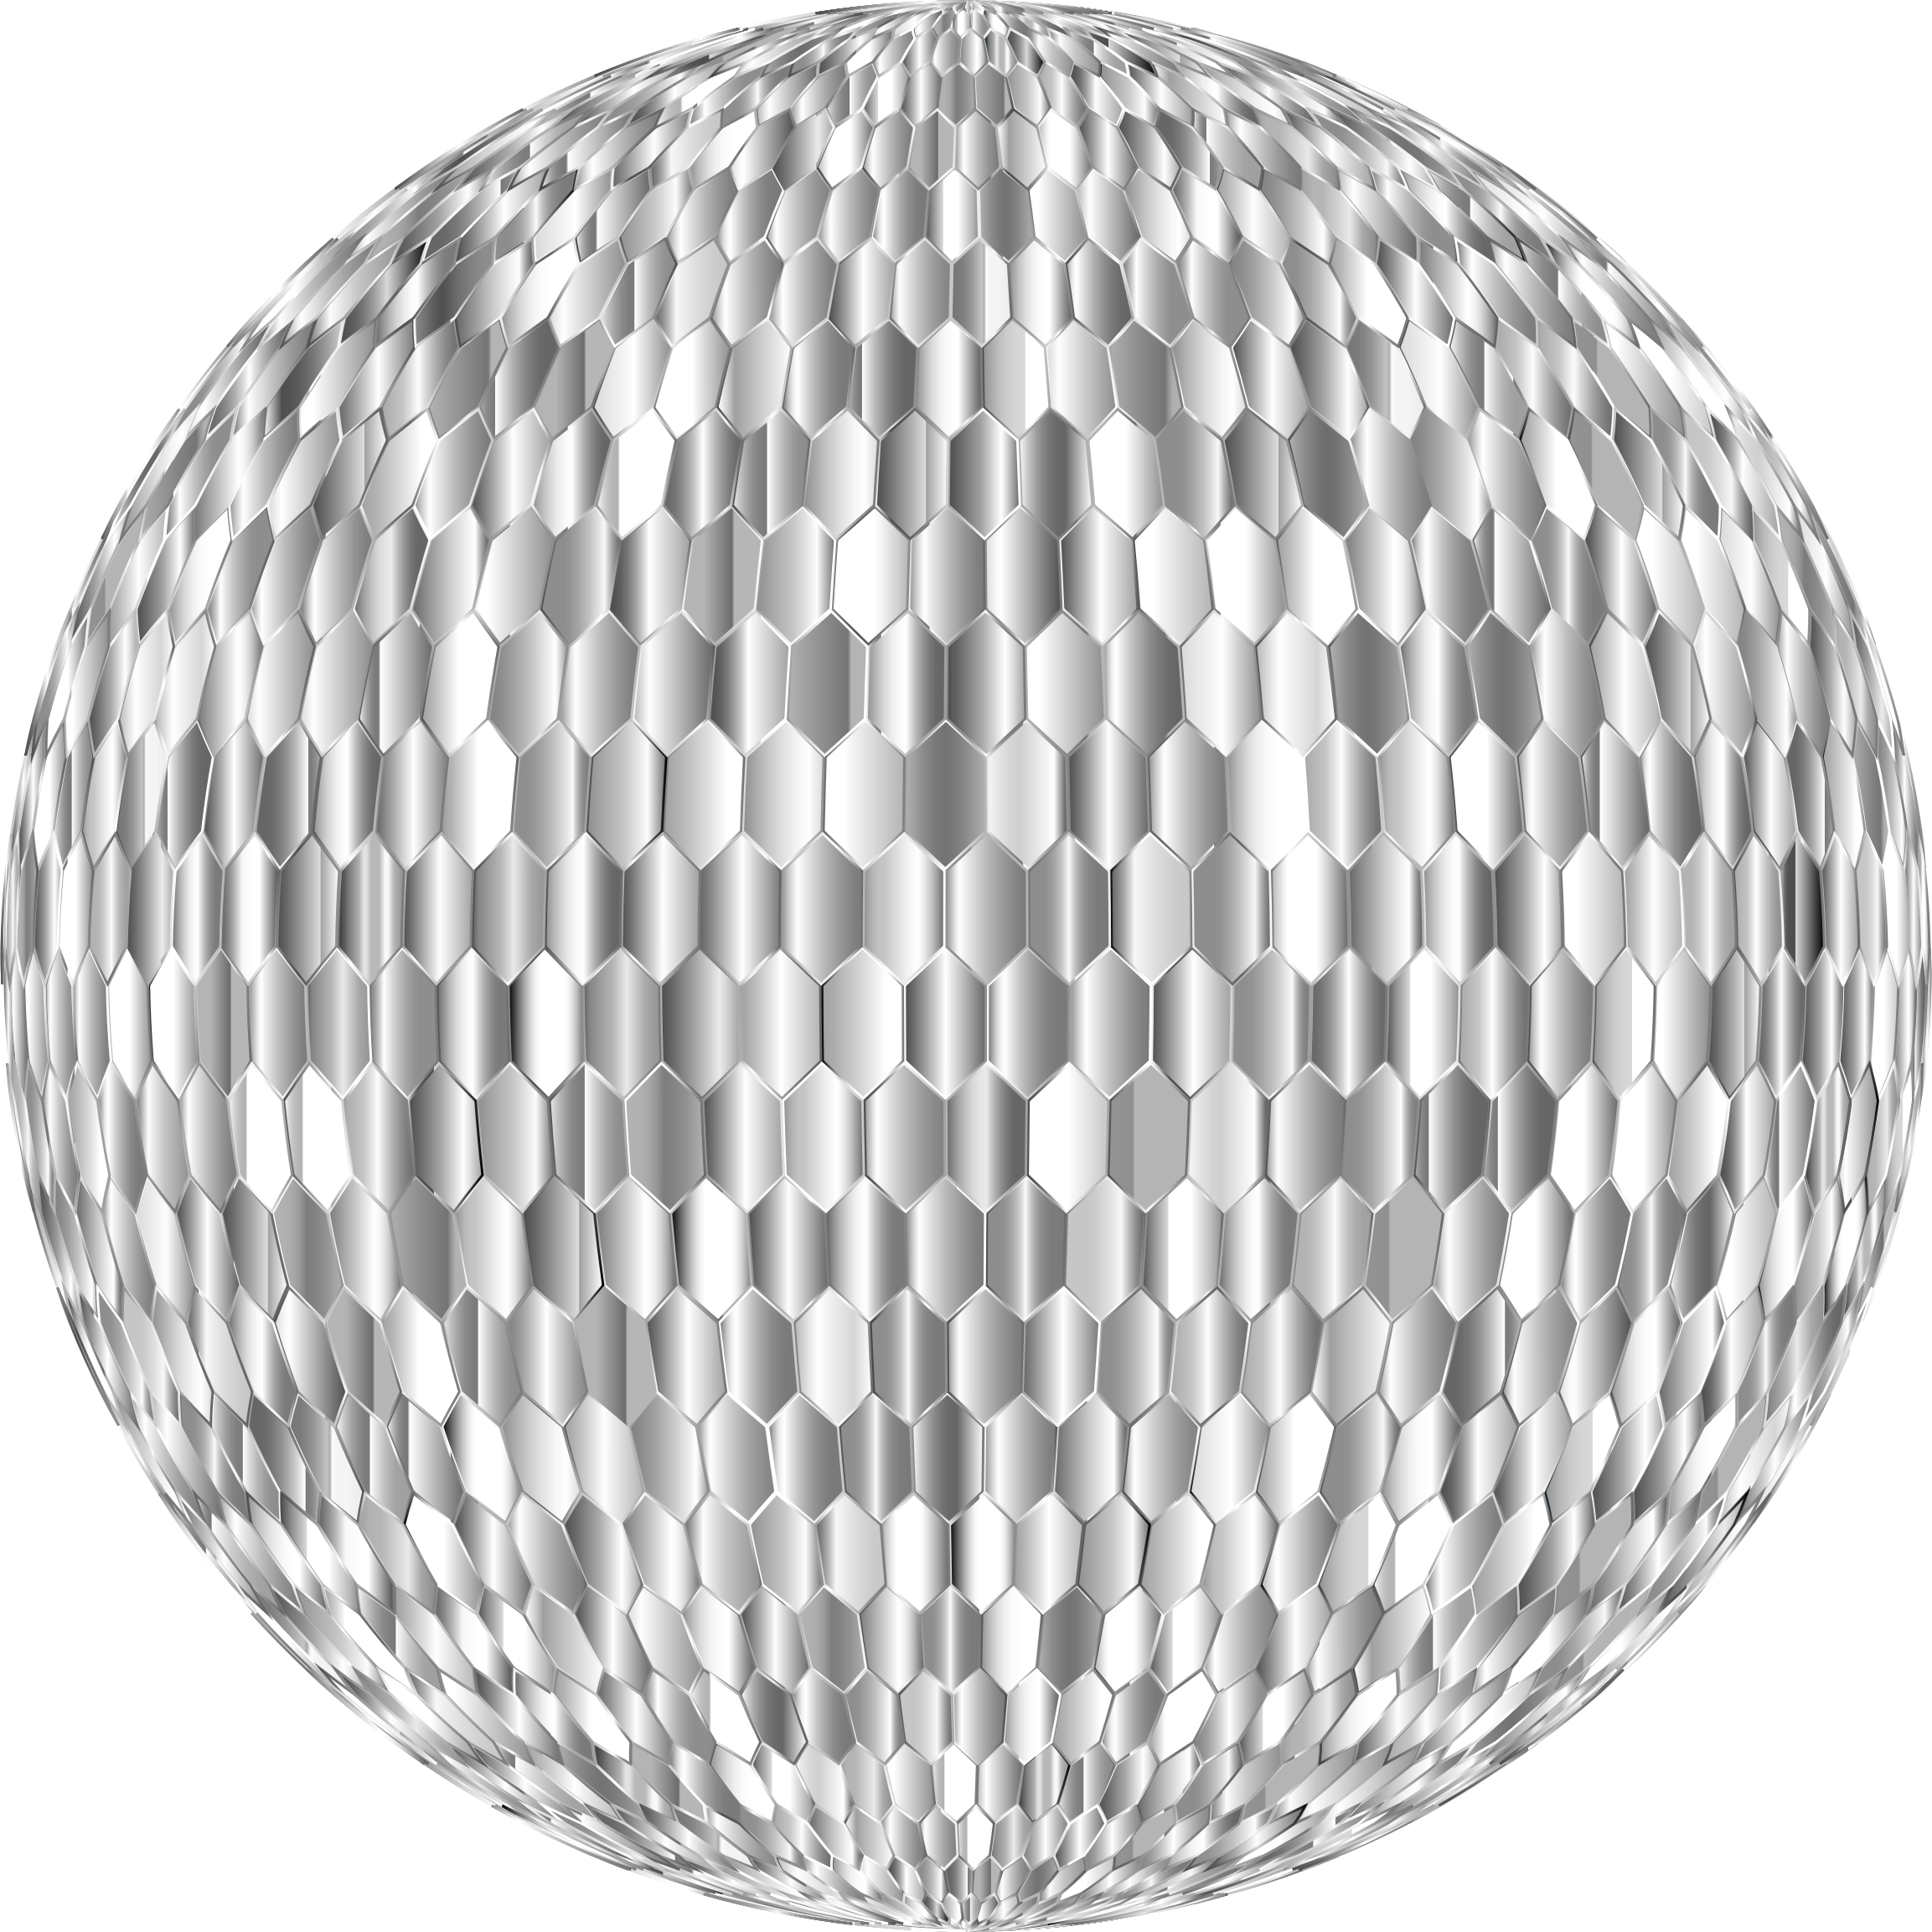 Prismatic Hexagonal Grid Sphere Variation 2 7 by GDJ